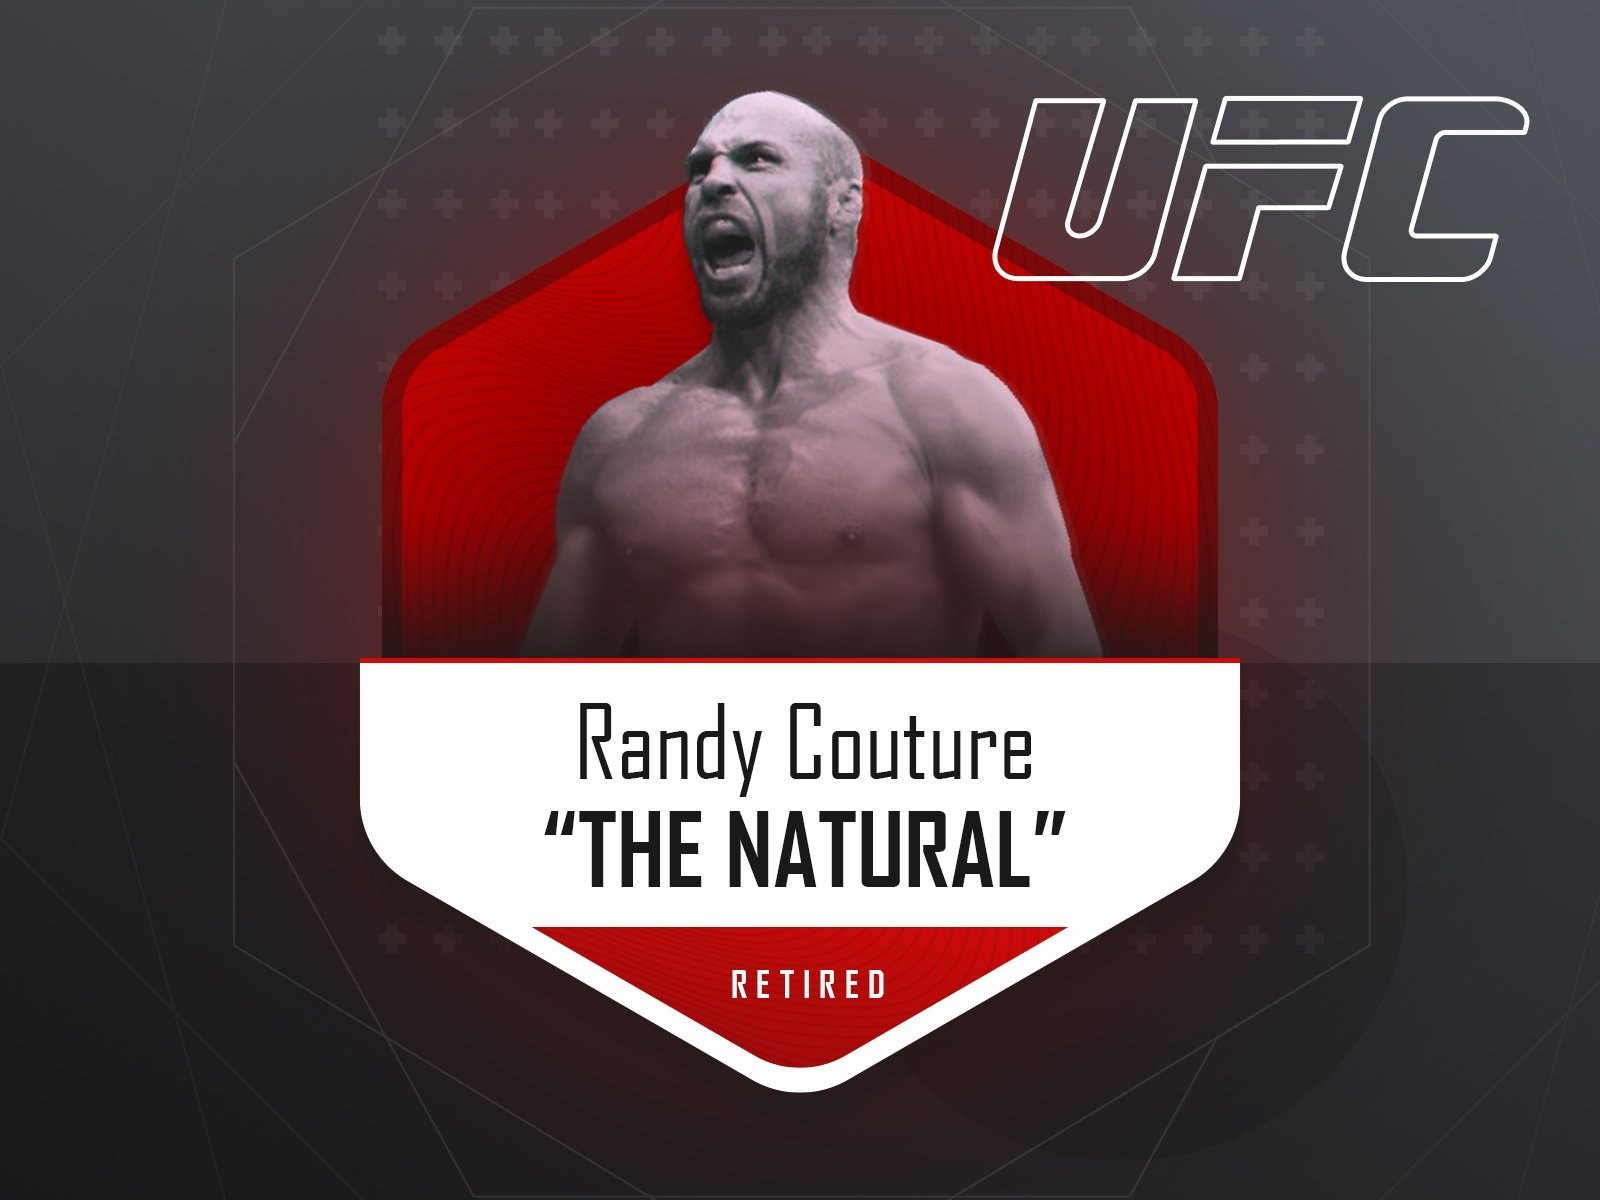 Randy Couture - - UFC fighter